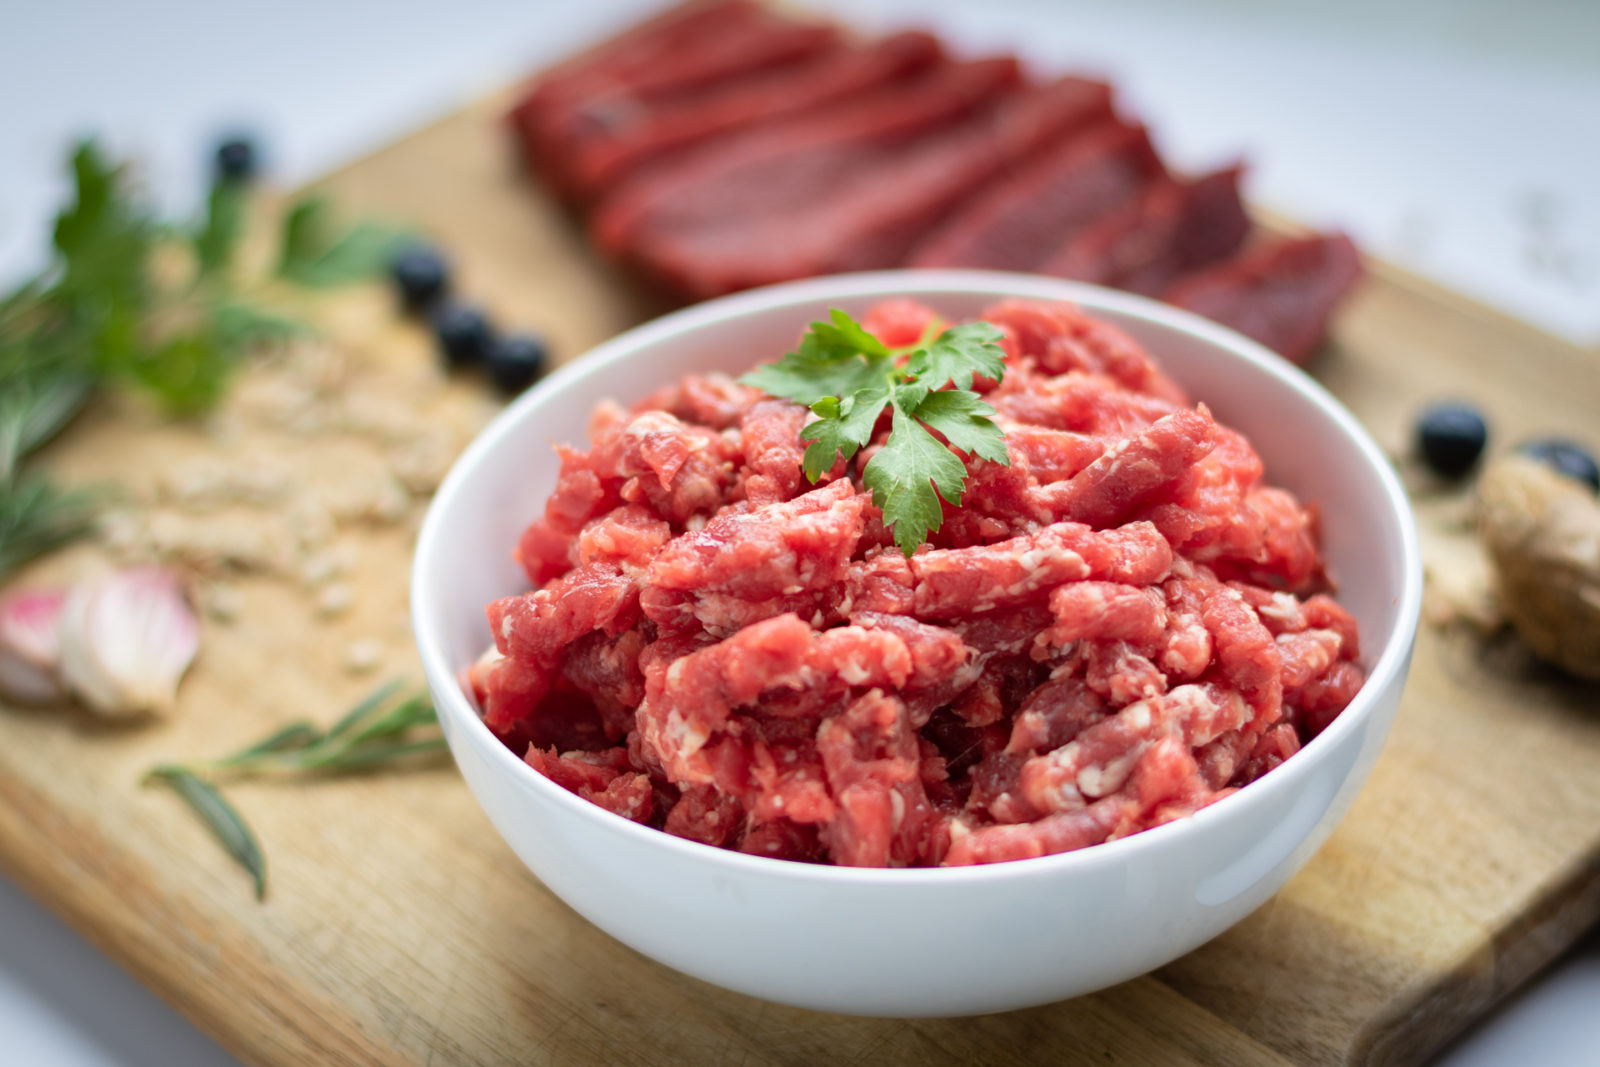 raw ground beef for dogs